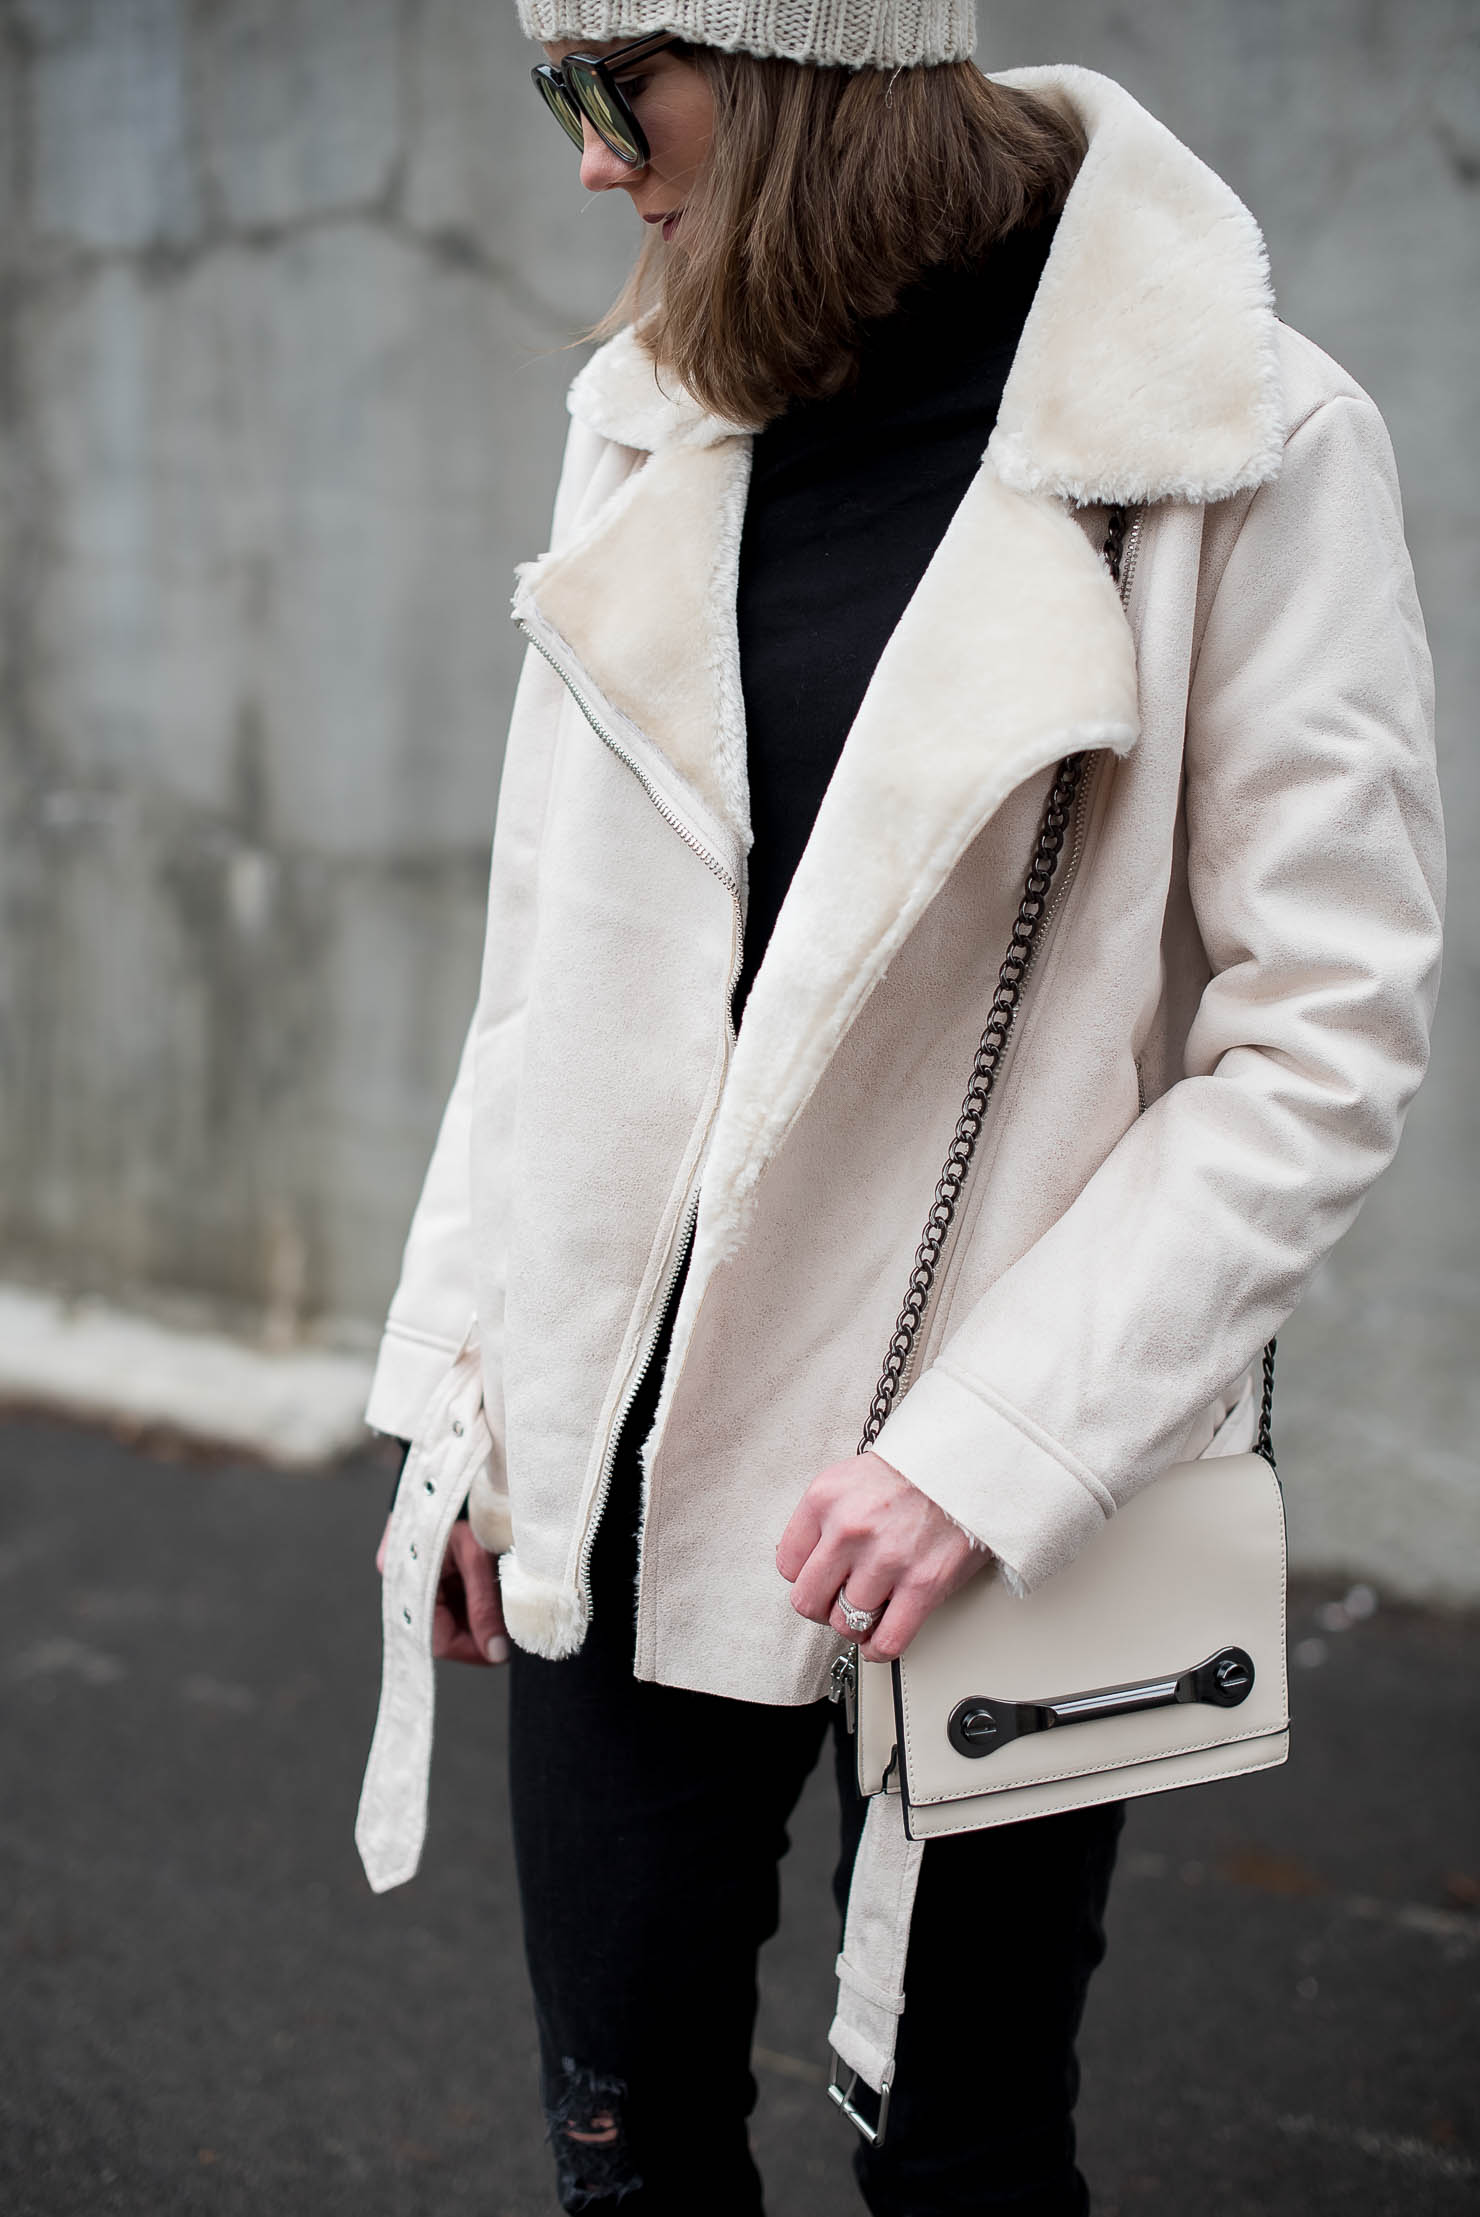 -off-white-shearling-moto-jacket-the-best-shearling-jackets-black-and-cream-winter-outfit-winter-fashion-how-to-stay-looking-chic-in-the-winter